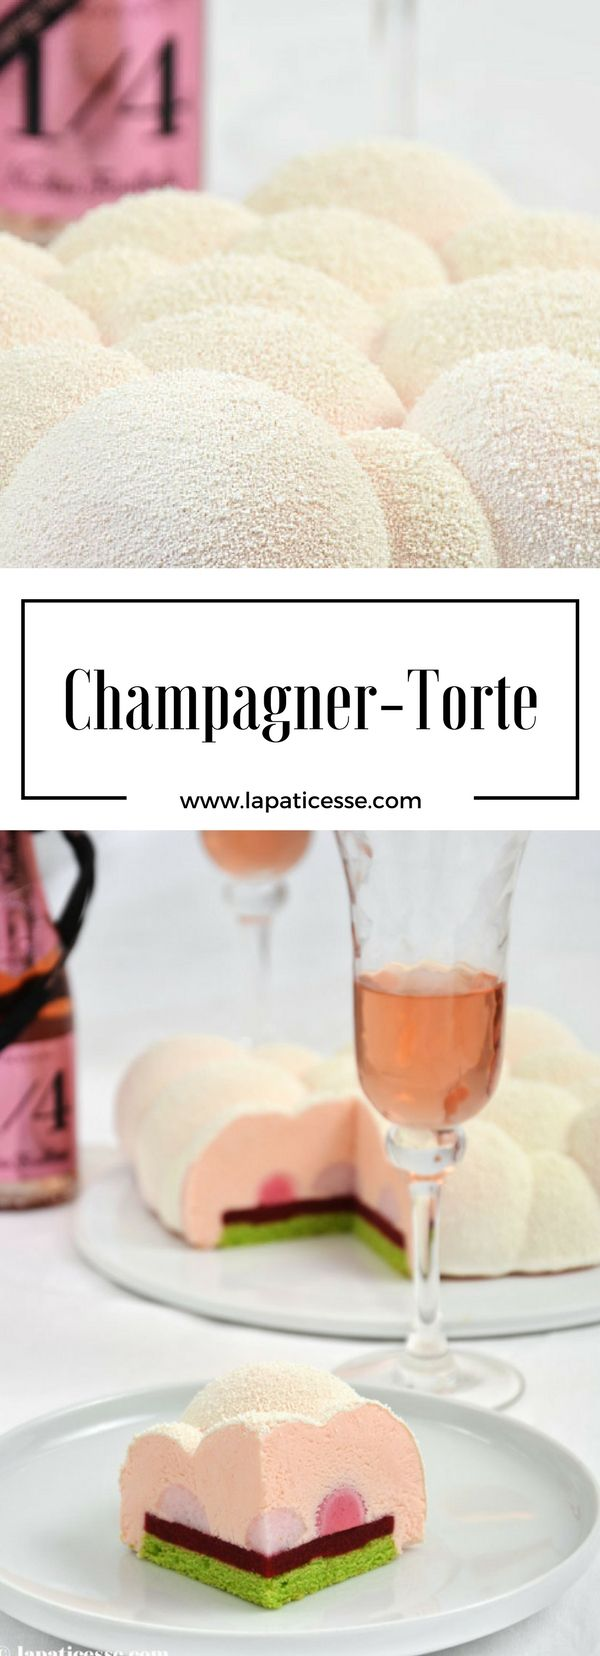 Rezept für Champagner-Torte Nuage d'Ispahan oder Wolke von Ispahan * Recipe for Pink Champagne Cake / Mousse Cake * Recette de Entremets Champagne made by La Pâticesse